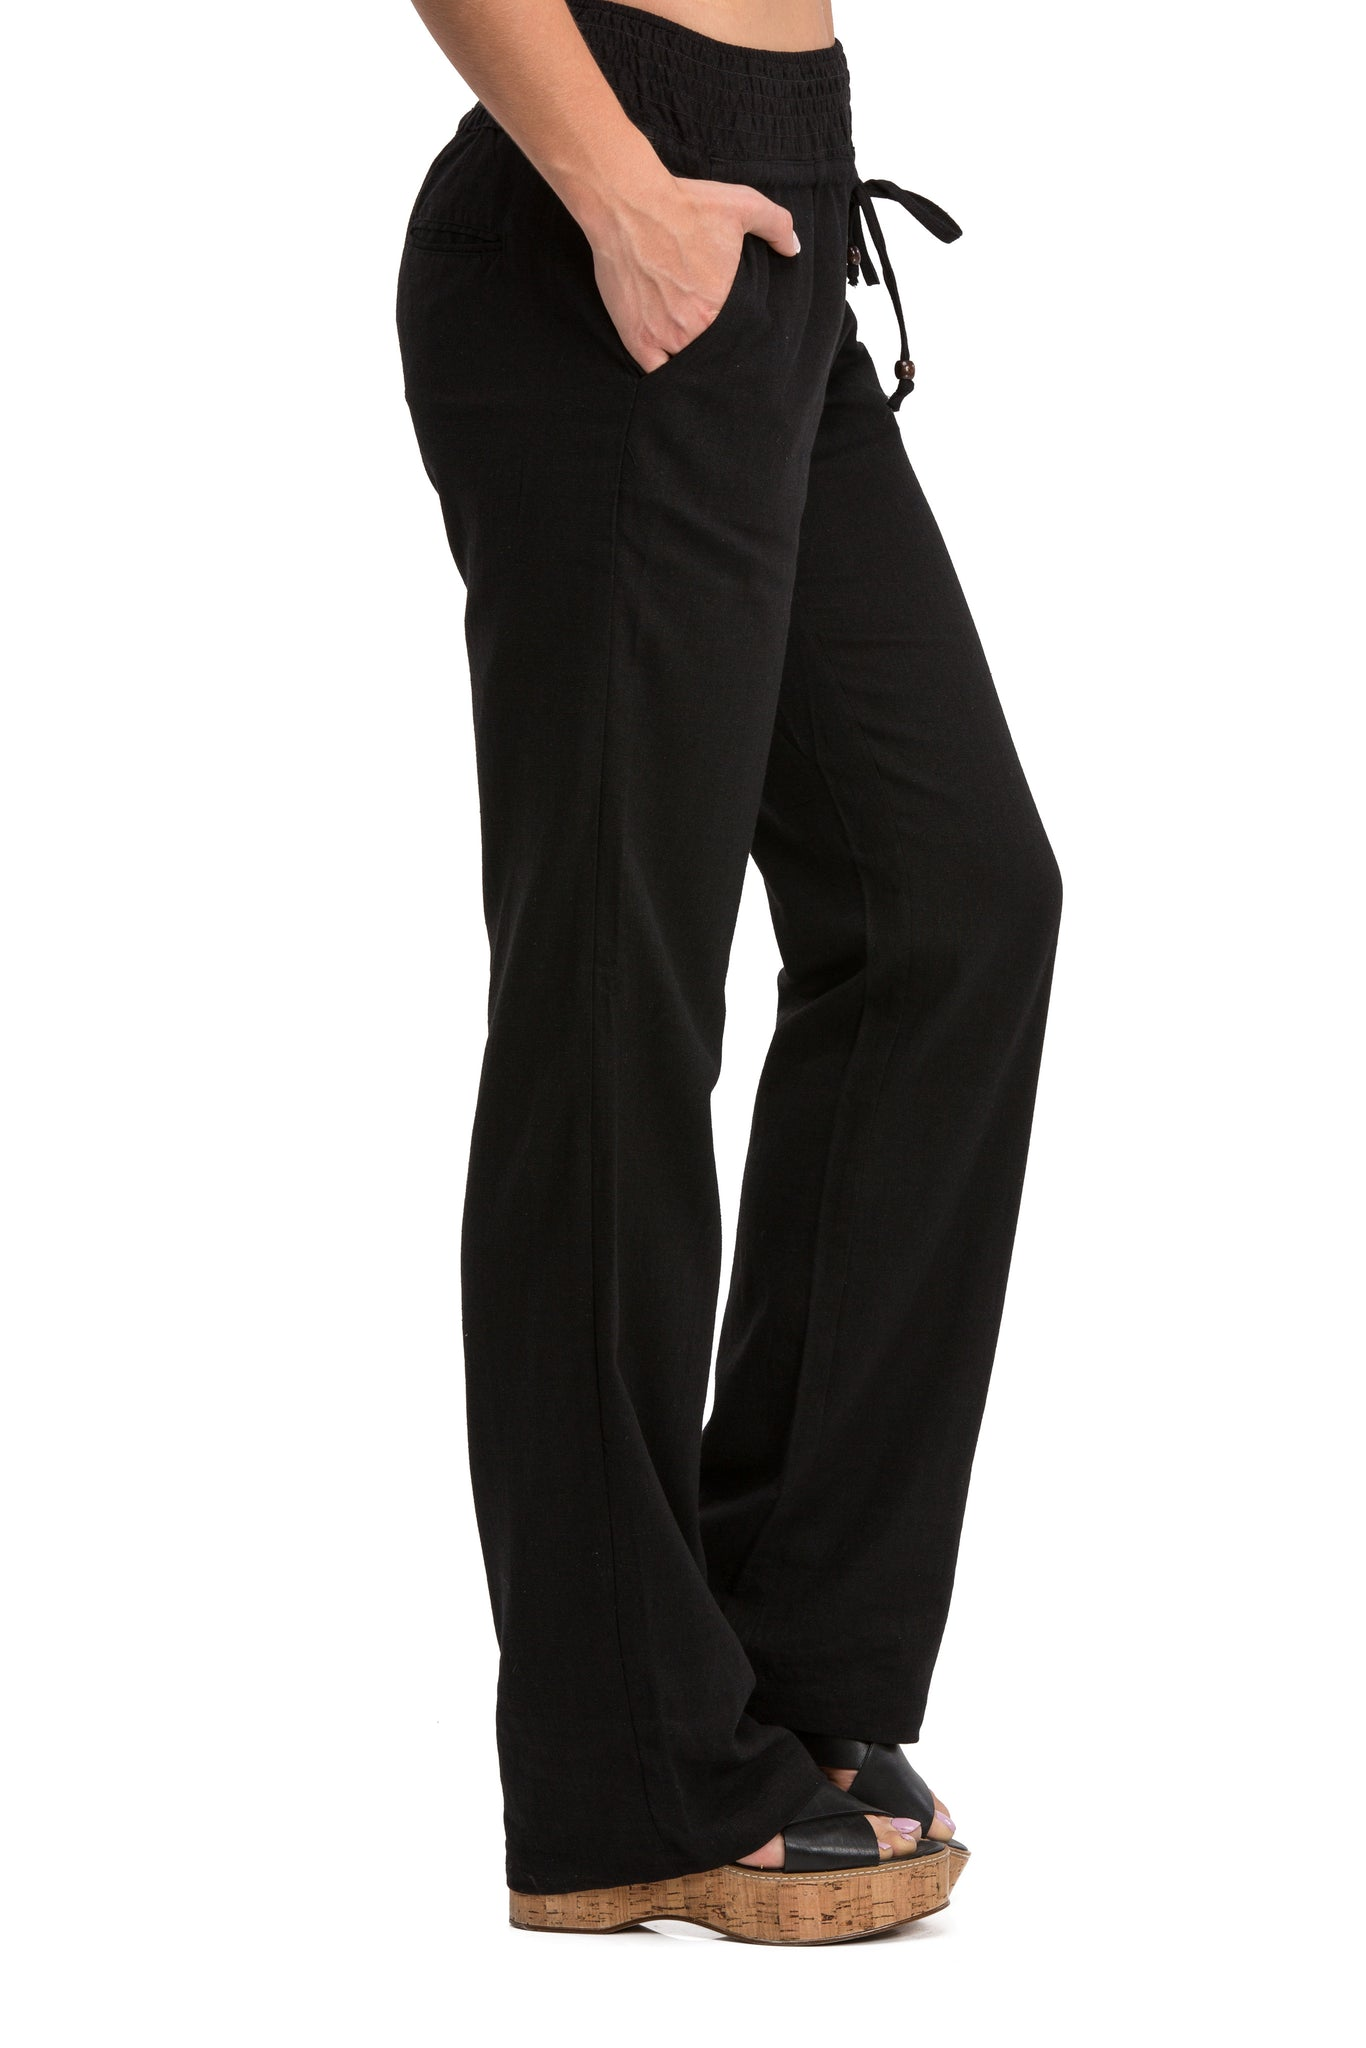 Comfy Drawstring Linen Pants Long with Smocked Band Waist (Black) - Poplooks